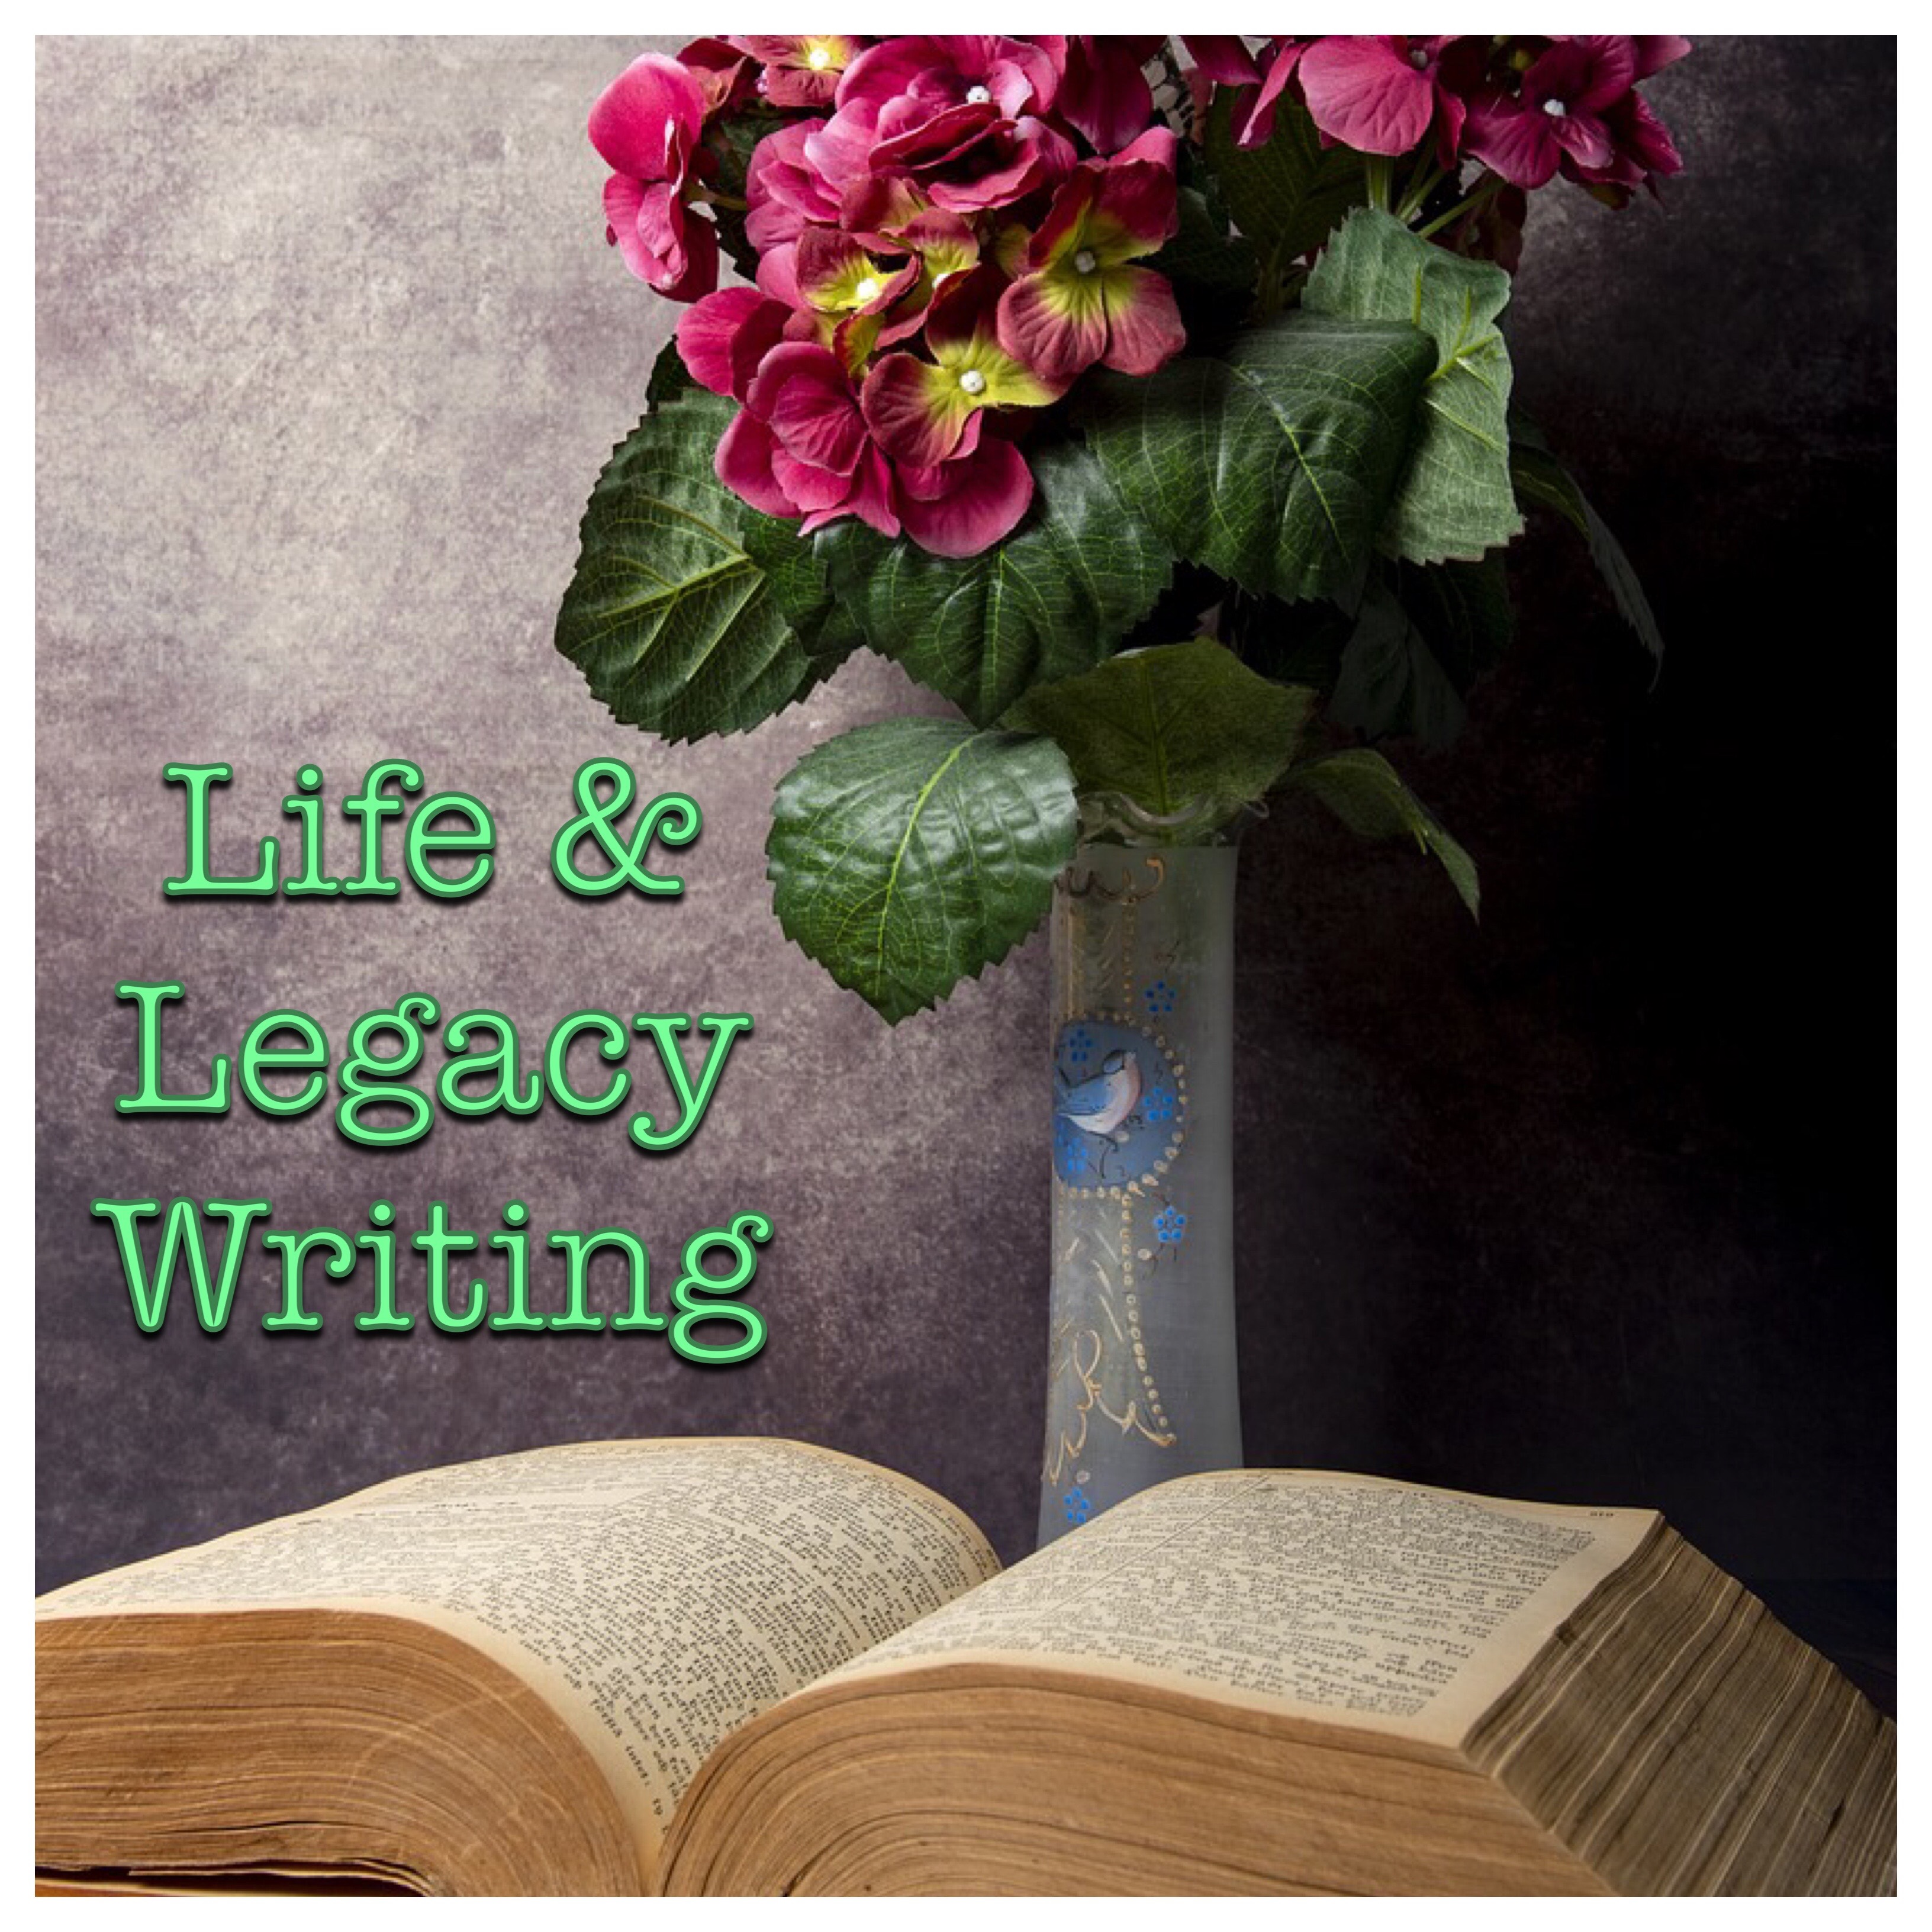 Life & Legacy Writing (Book and flowers)